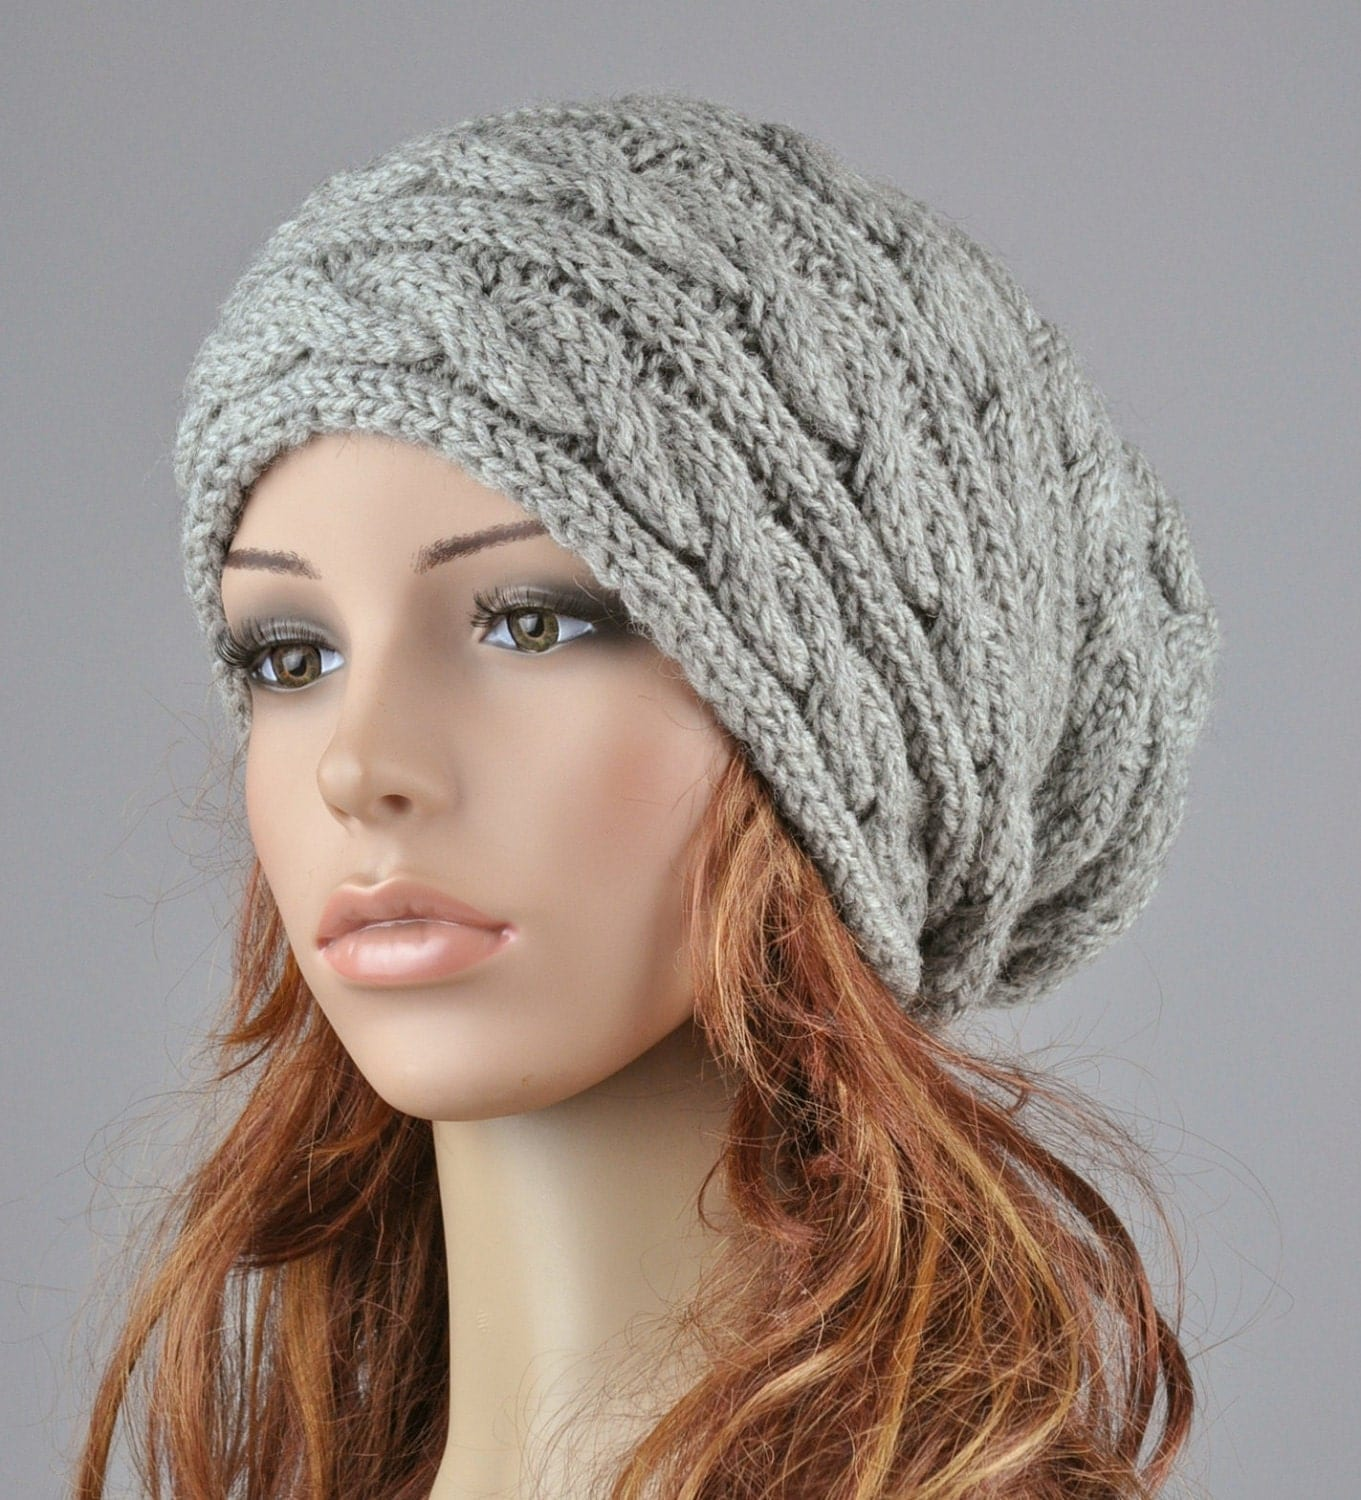 Hat Knitting Patterns : Hand knit hat Grey hat slouchy hat cable pattern hat by MaxMelody